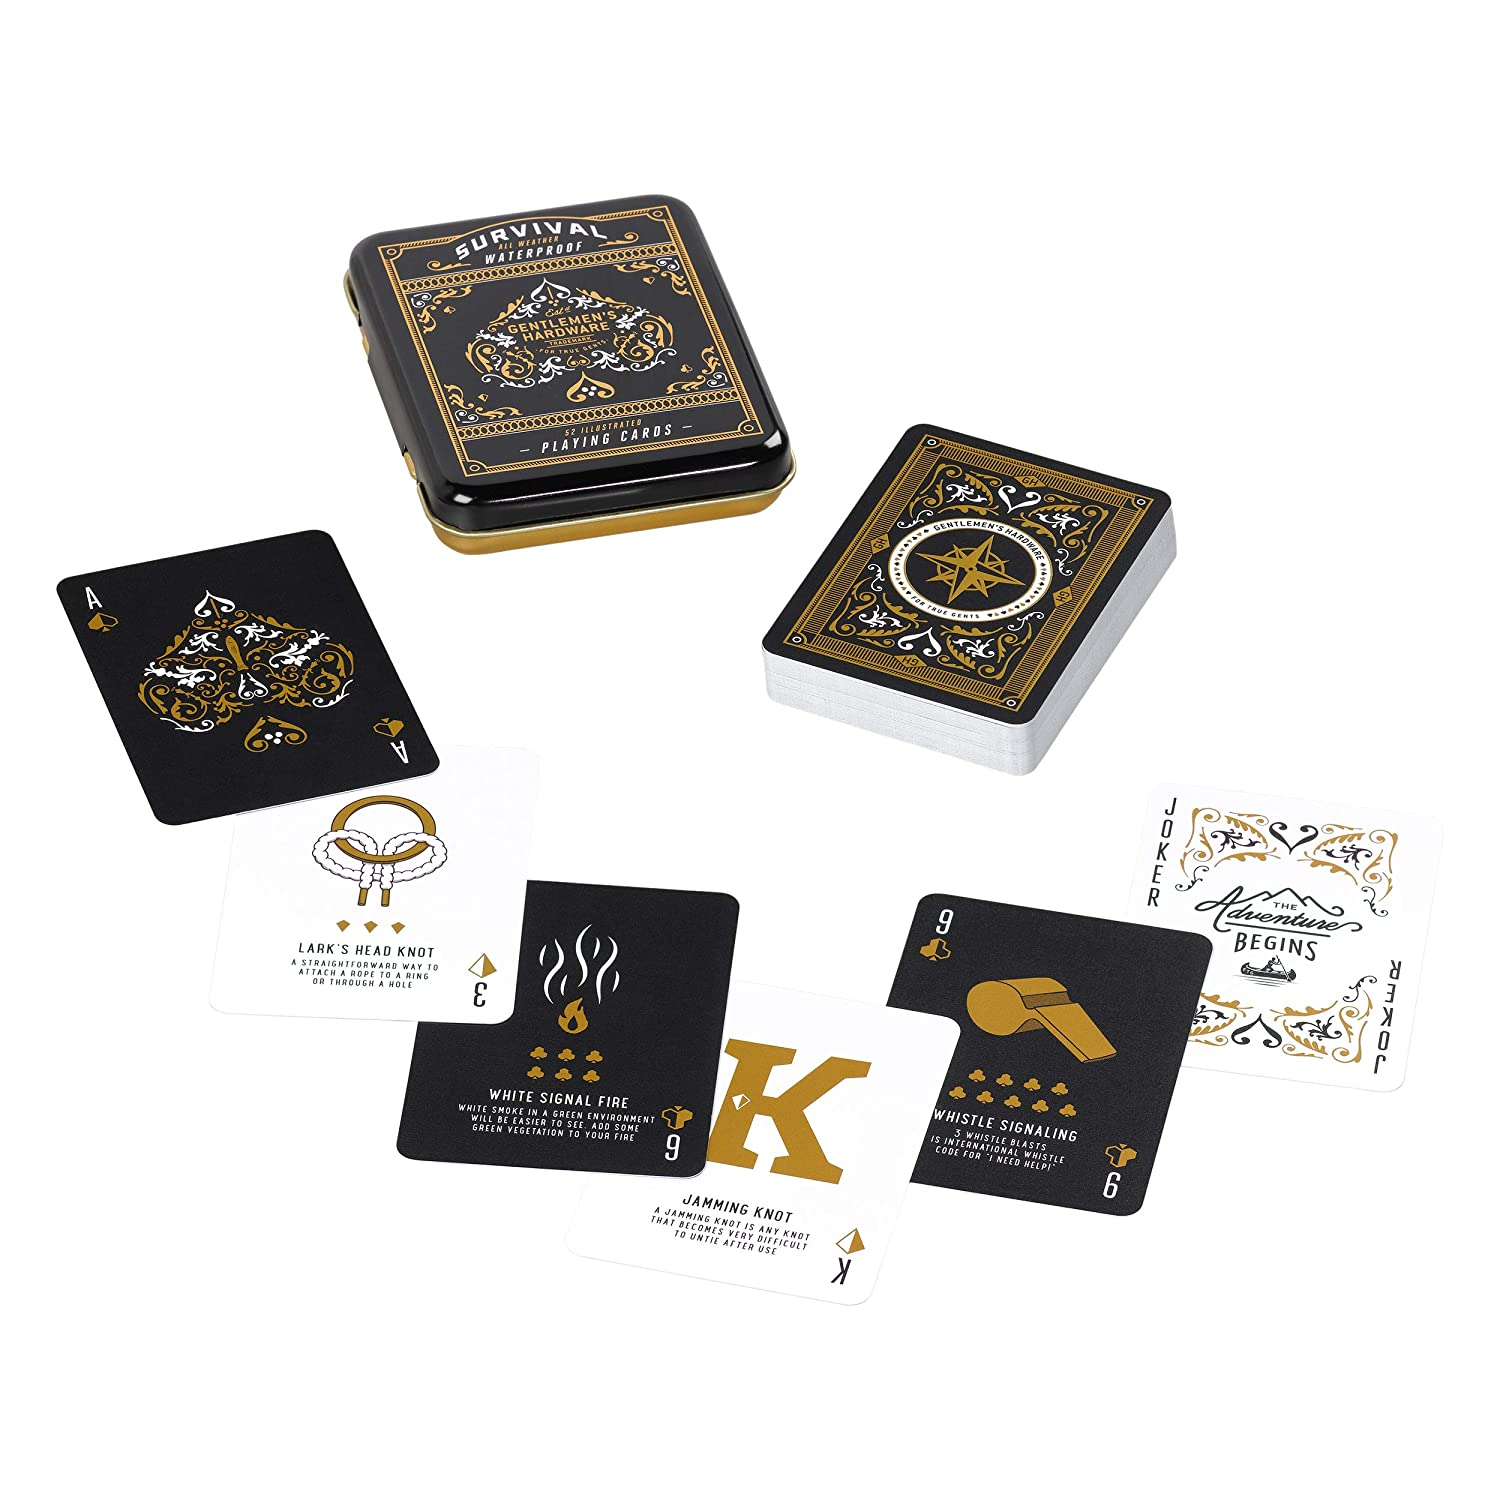 Gentlemen's Hardware Campfire Survival All Weather Waterproof Travel Playing Cards Set with Durable Metal Tin Wild & Wolf - L&G AGEN111